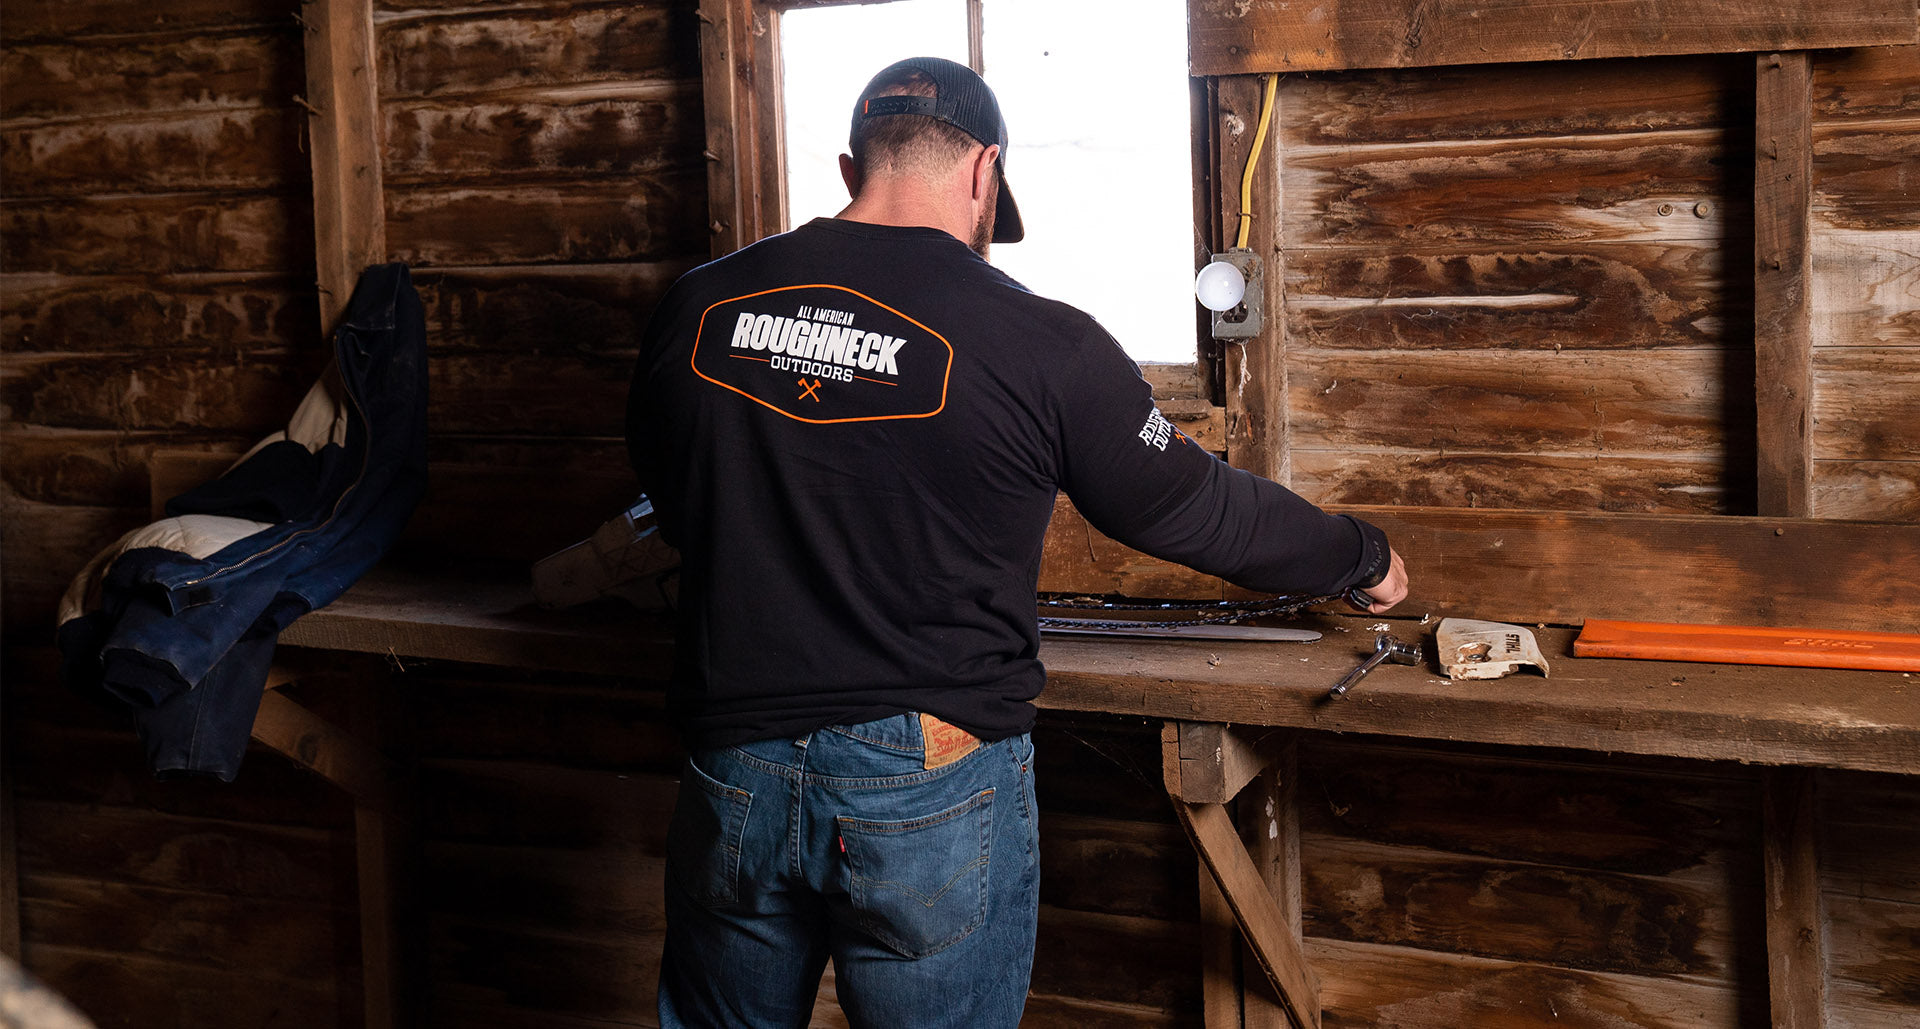 Roughneck Outdoors Tee